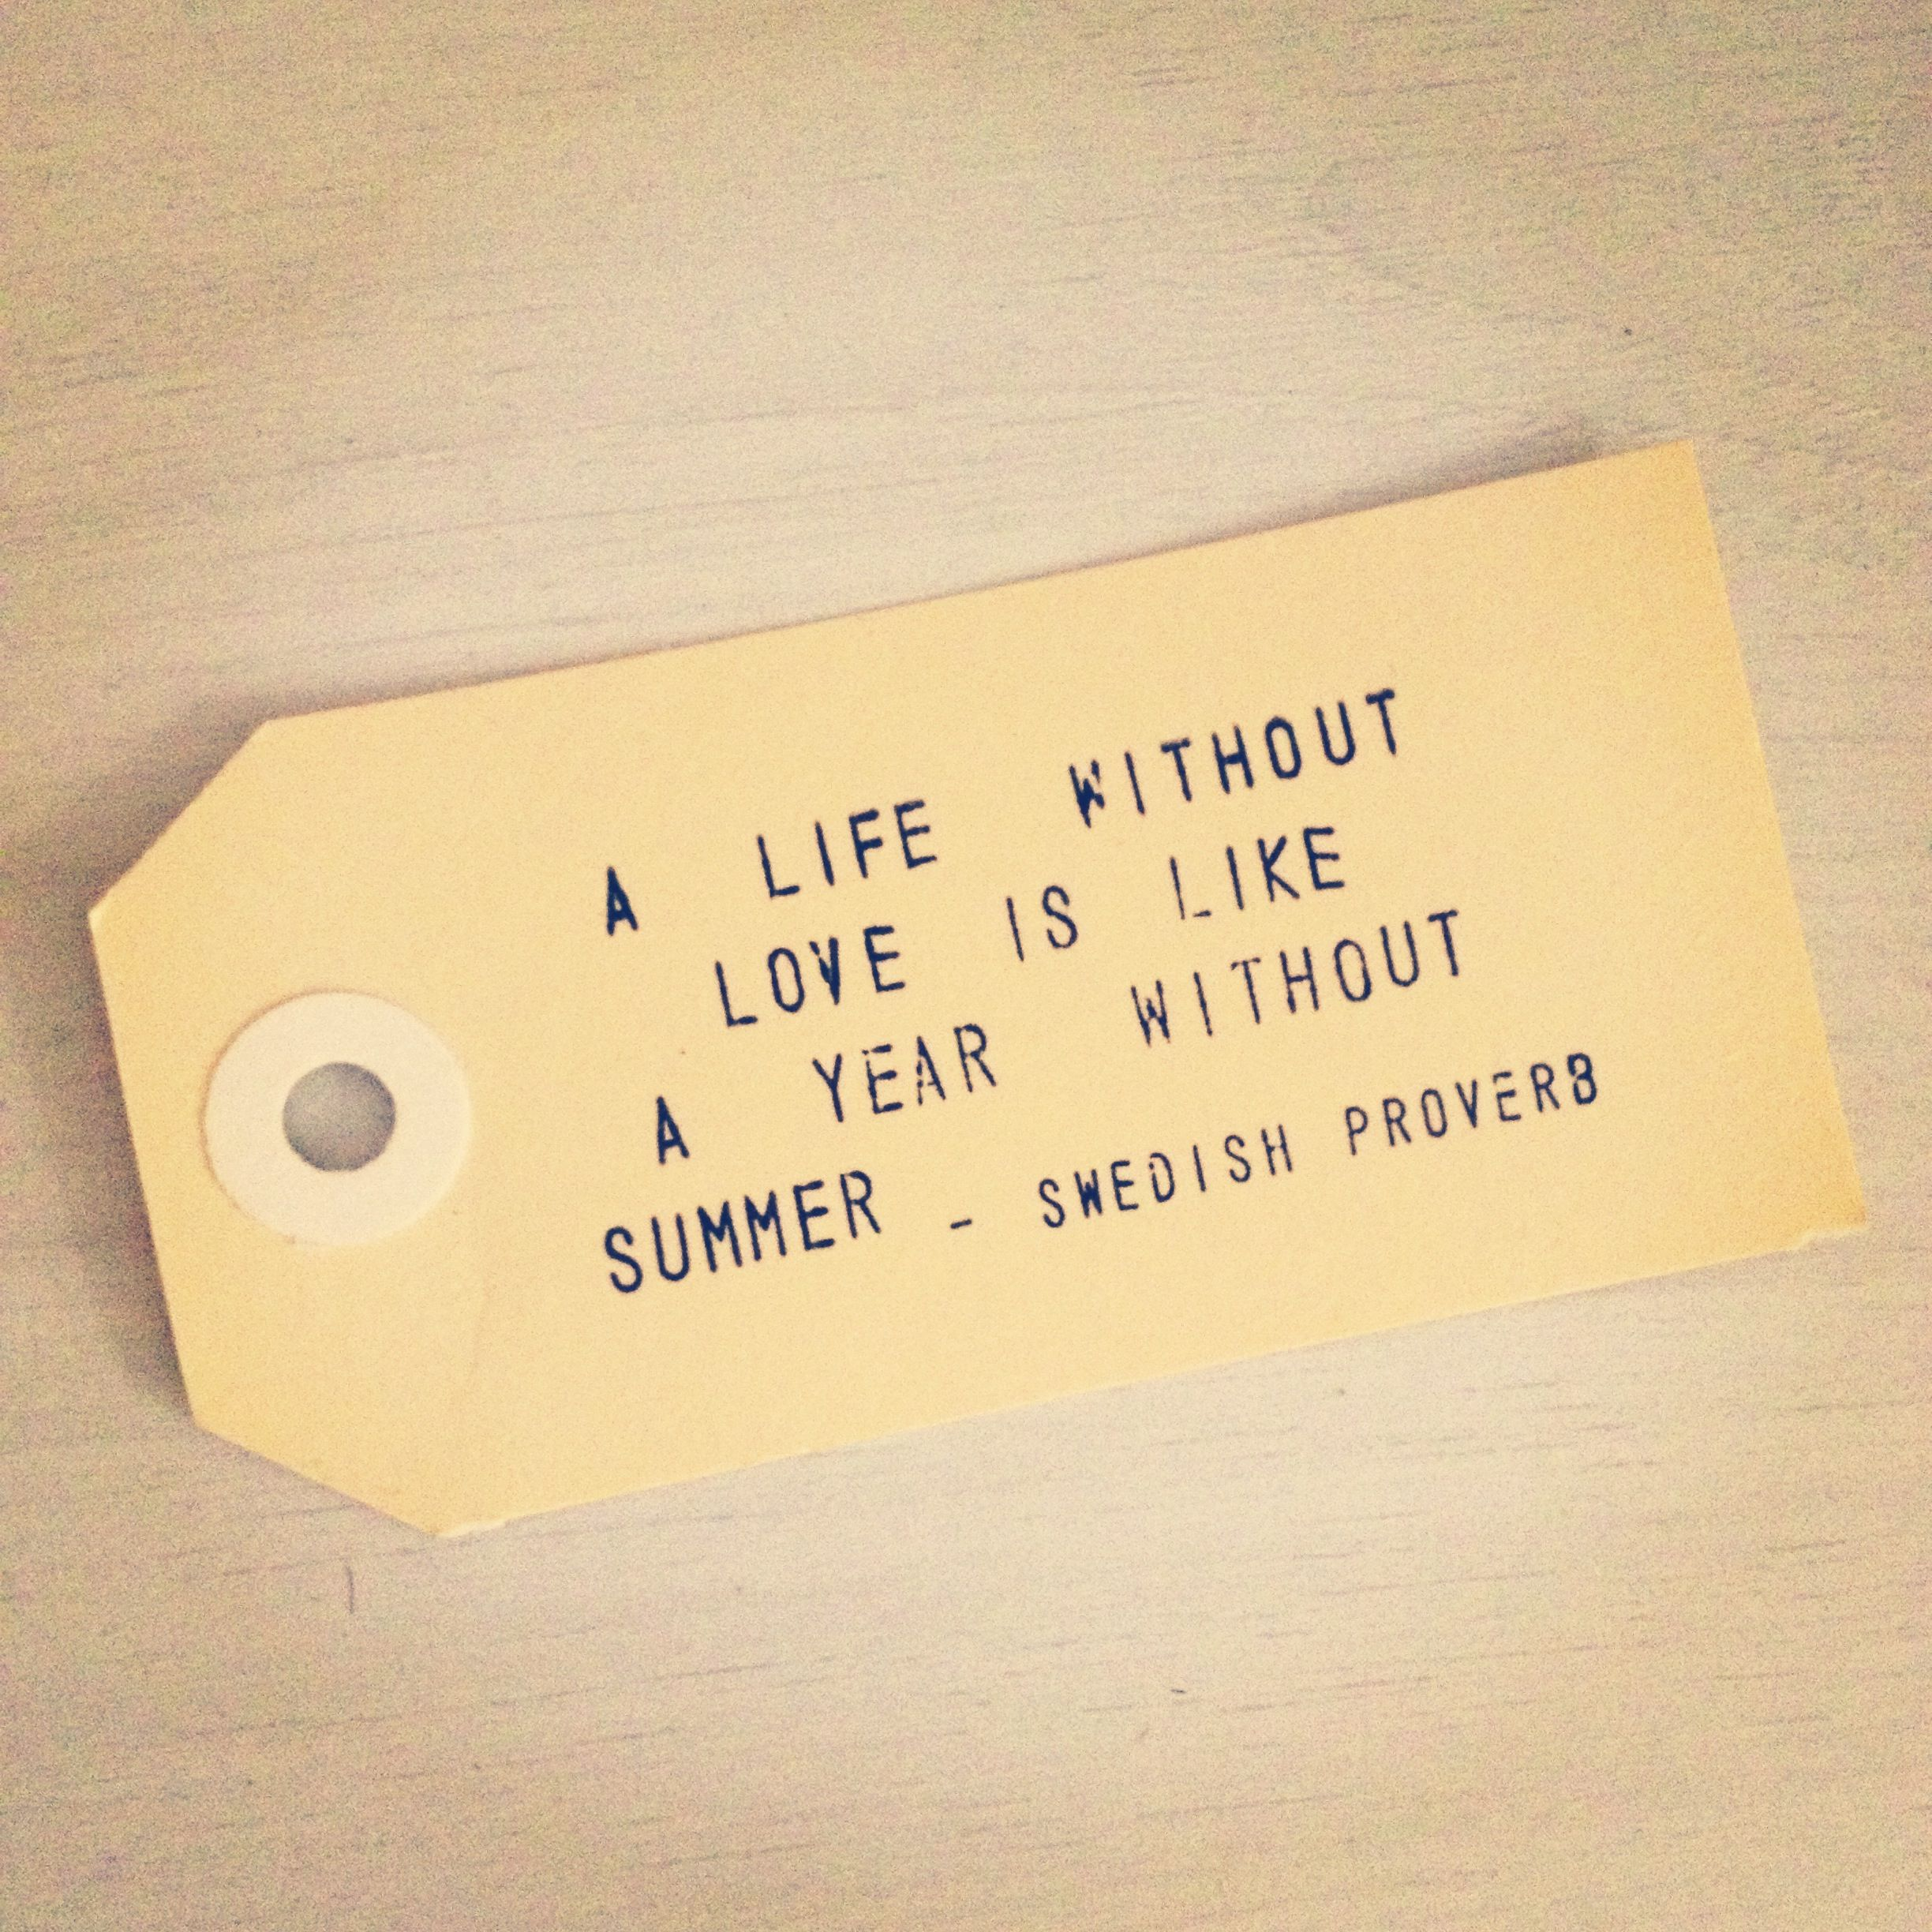 Summer Love Quotes Alluring A Life Without Love Is Like A Year Without Summer#quote #summer